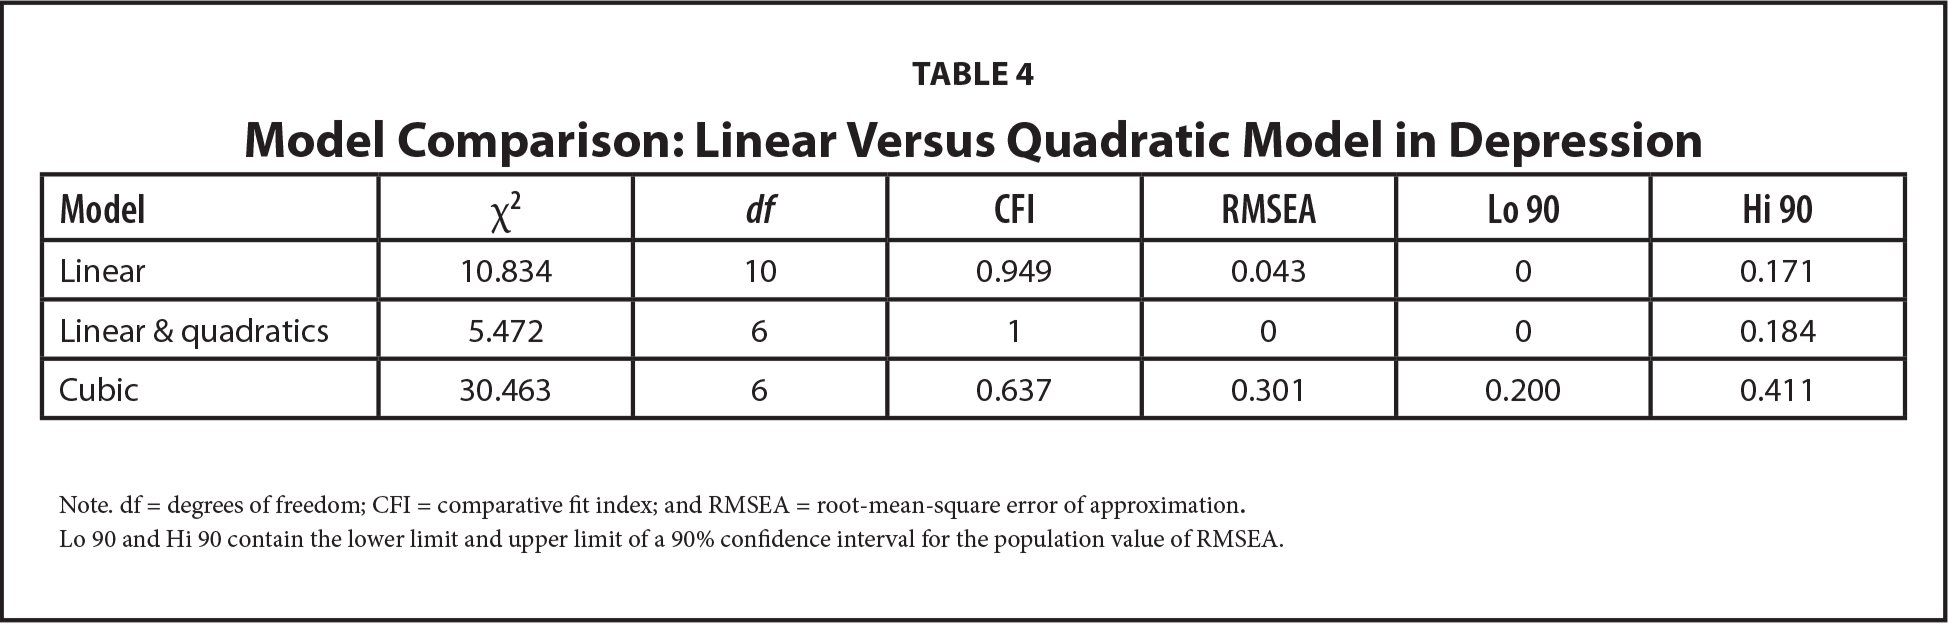 Model Comparison: Linear Versus Quadratic Model in Depression